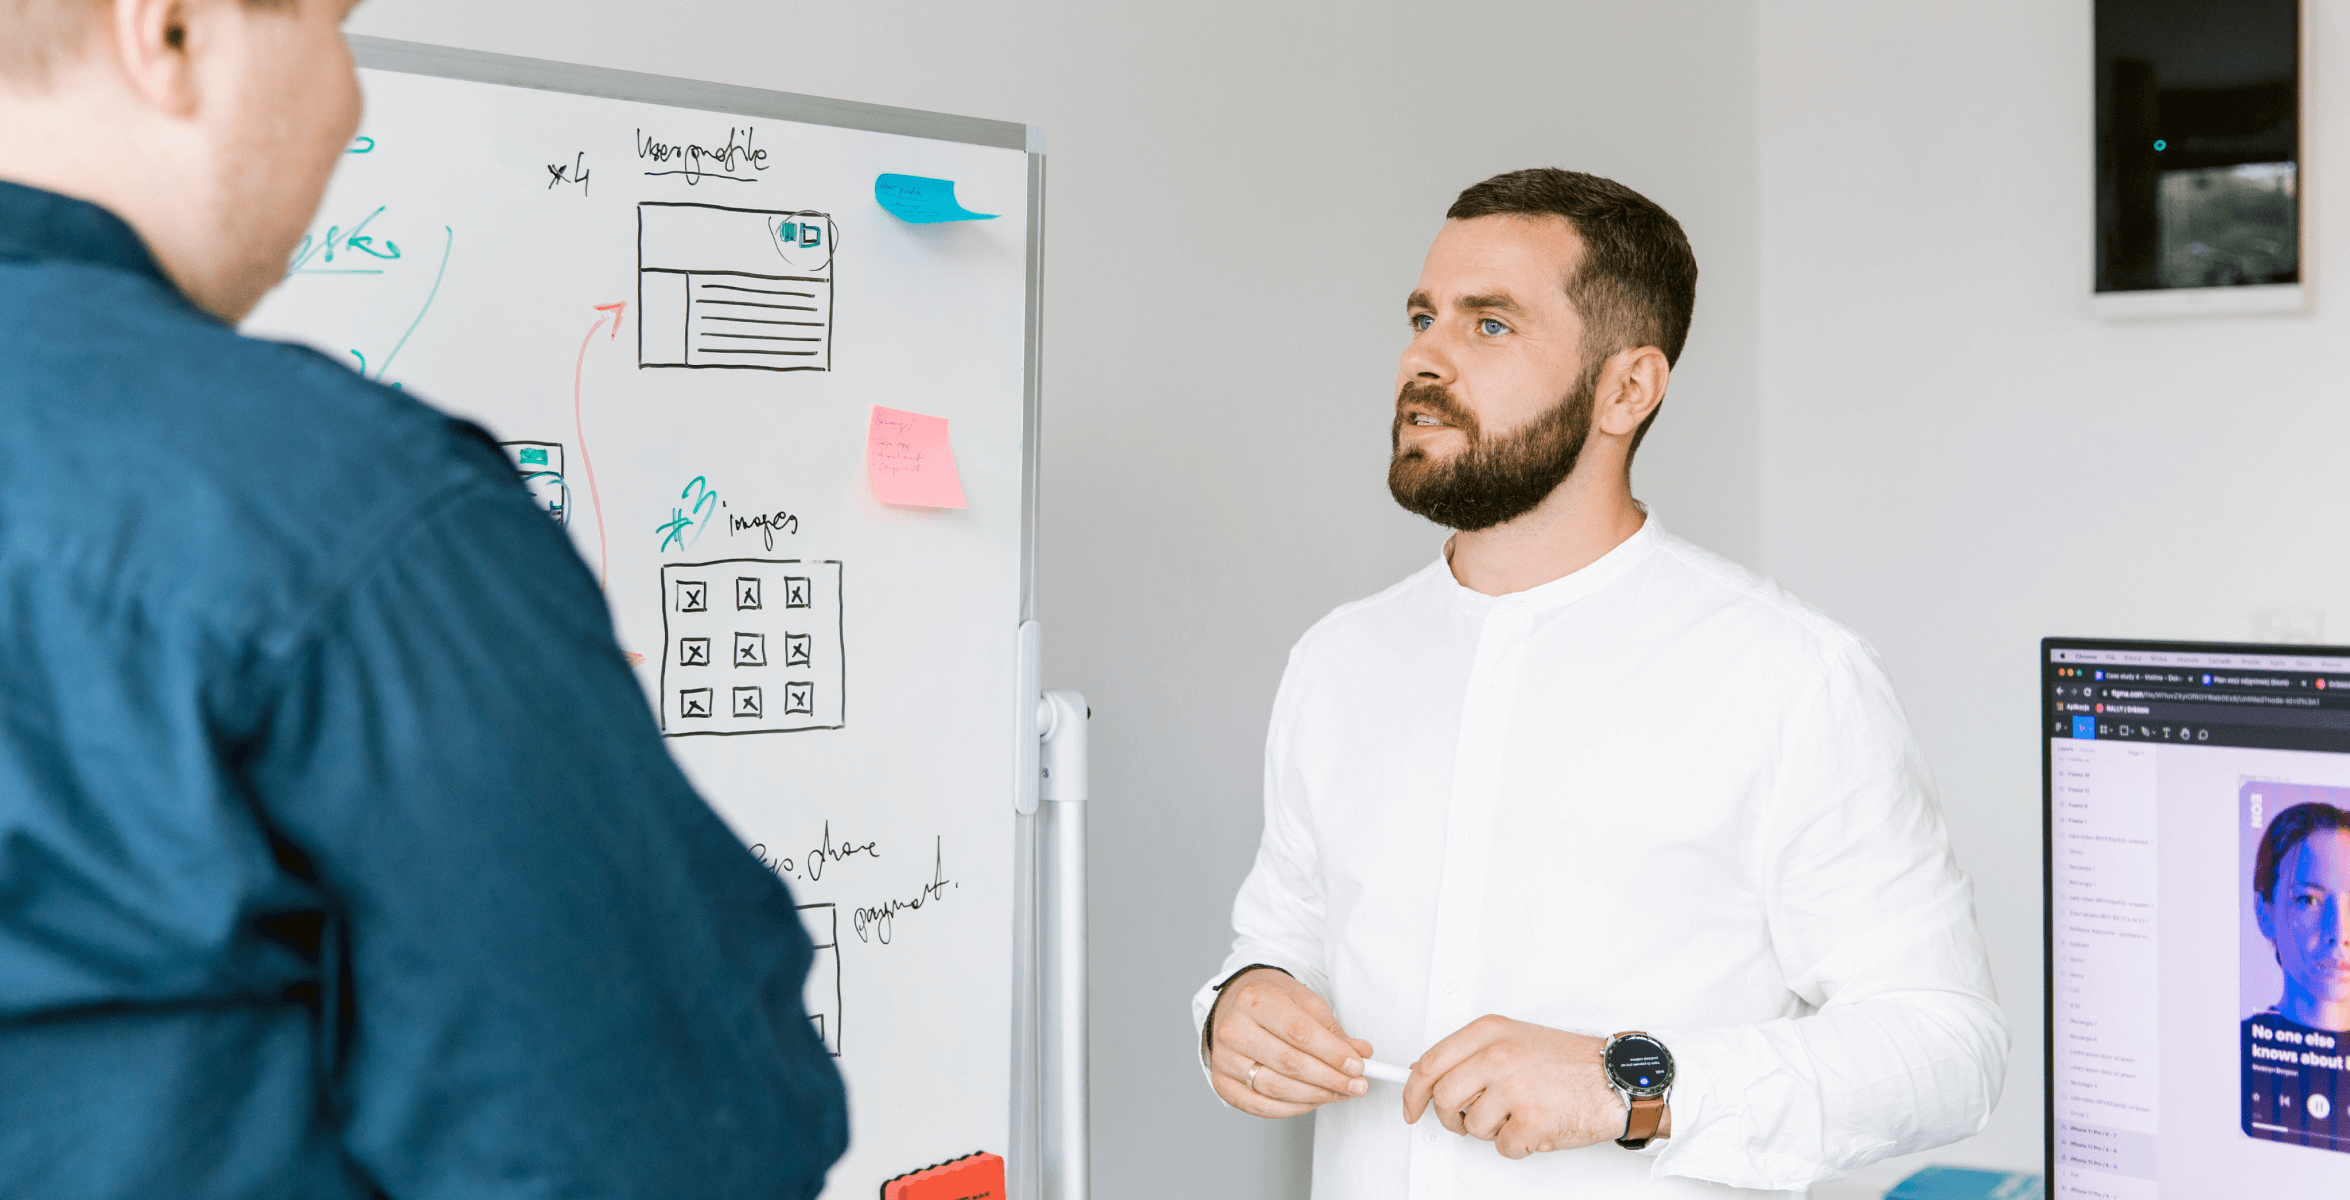 What do you need to know about the UX design process?